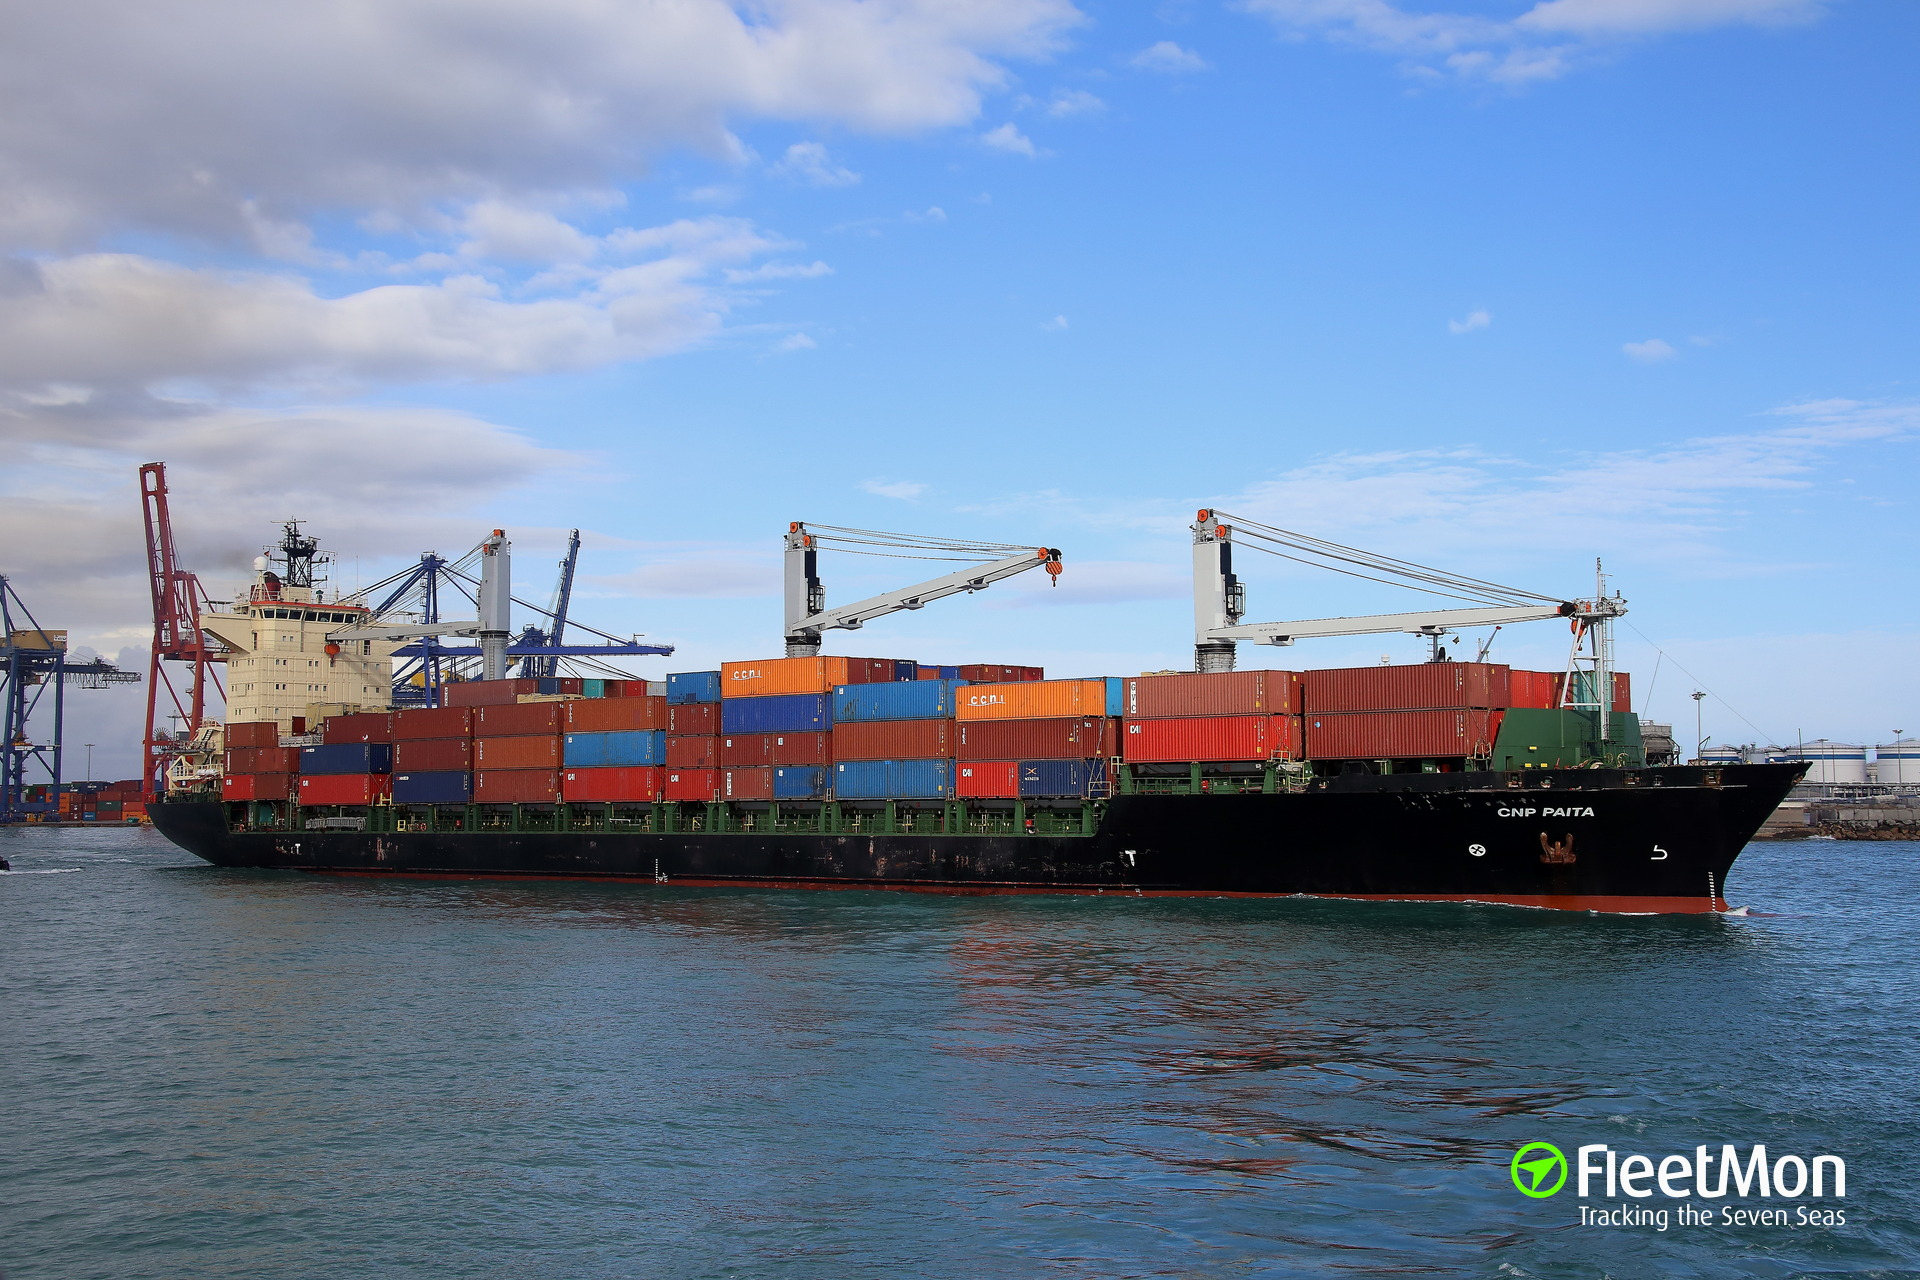 Container ship CNP PAITA pollution